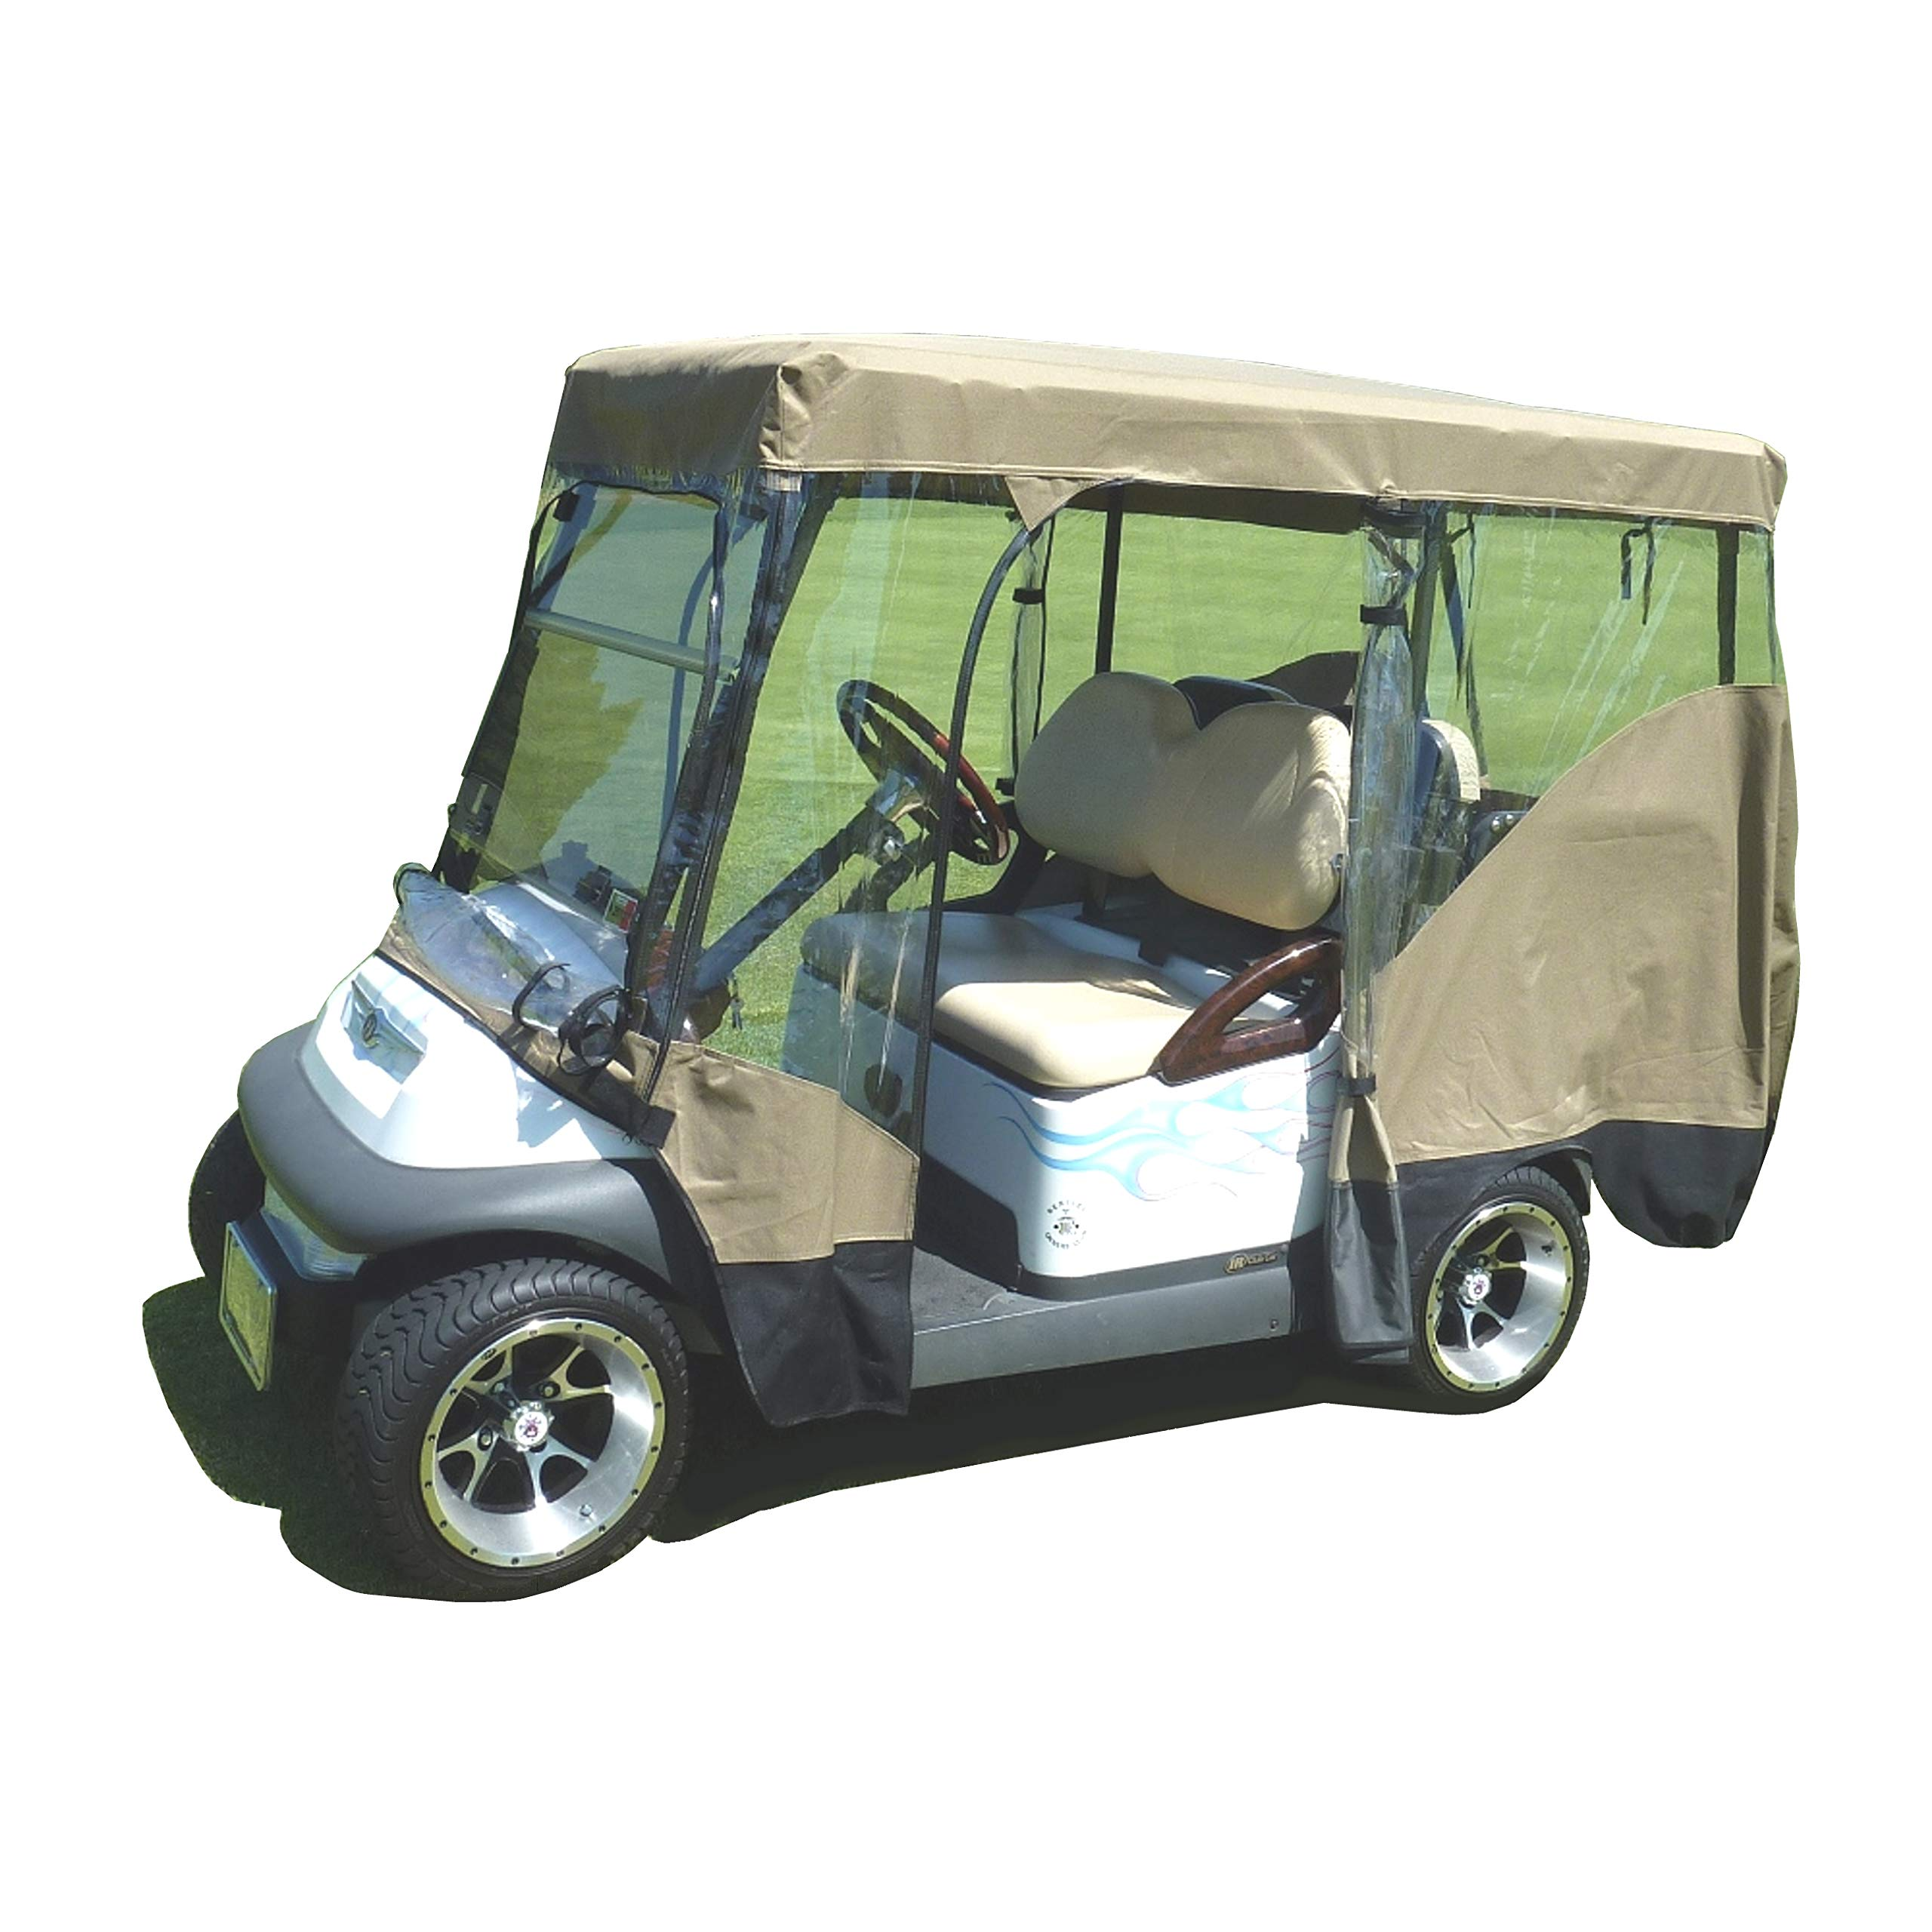 FC Formosa Covers Golf Cart Driving Enclosure for 4 Passengers roof up to 80'' L, fits Club car, EZGo and Yamaha G model - All Weather